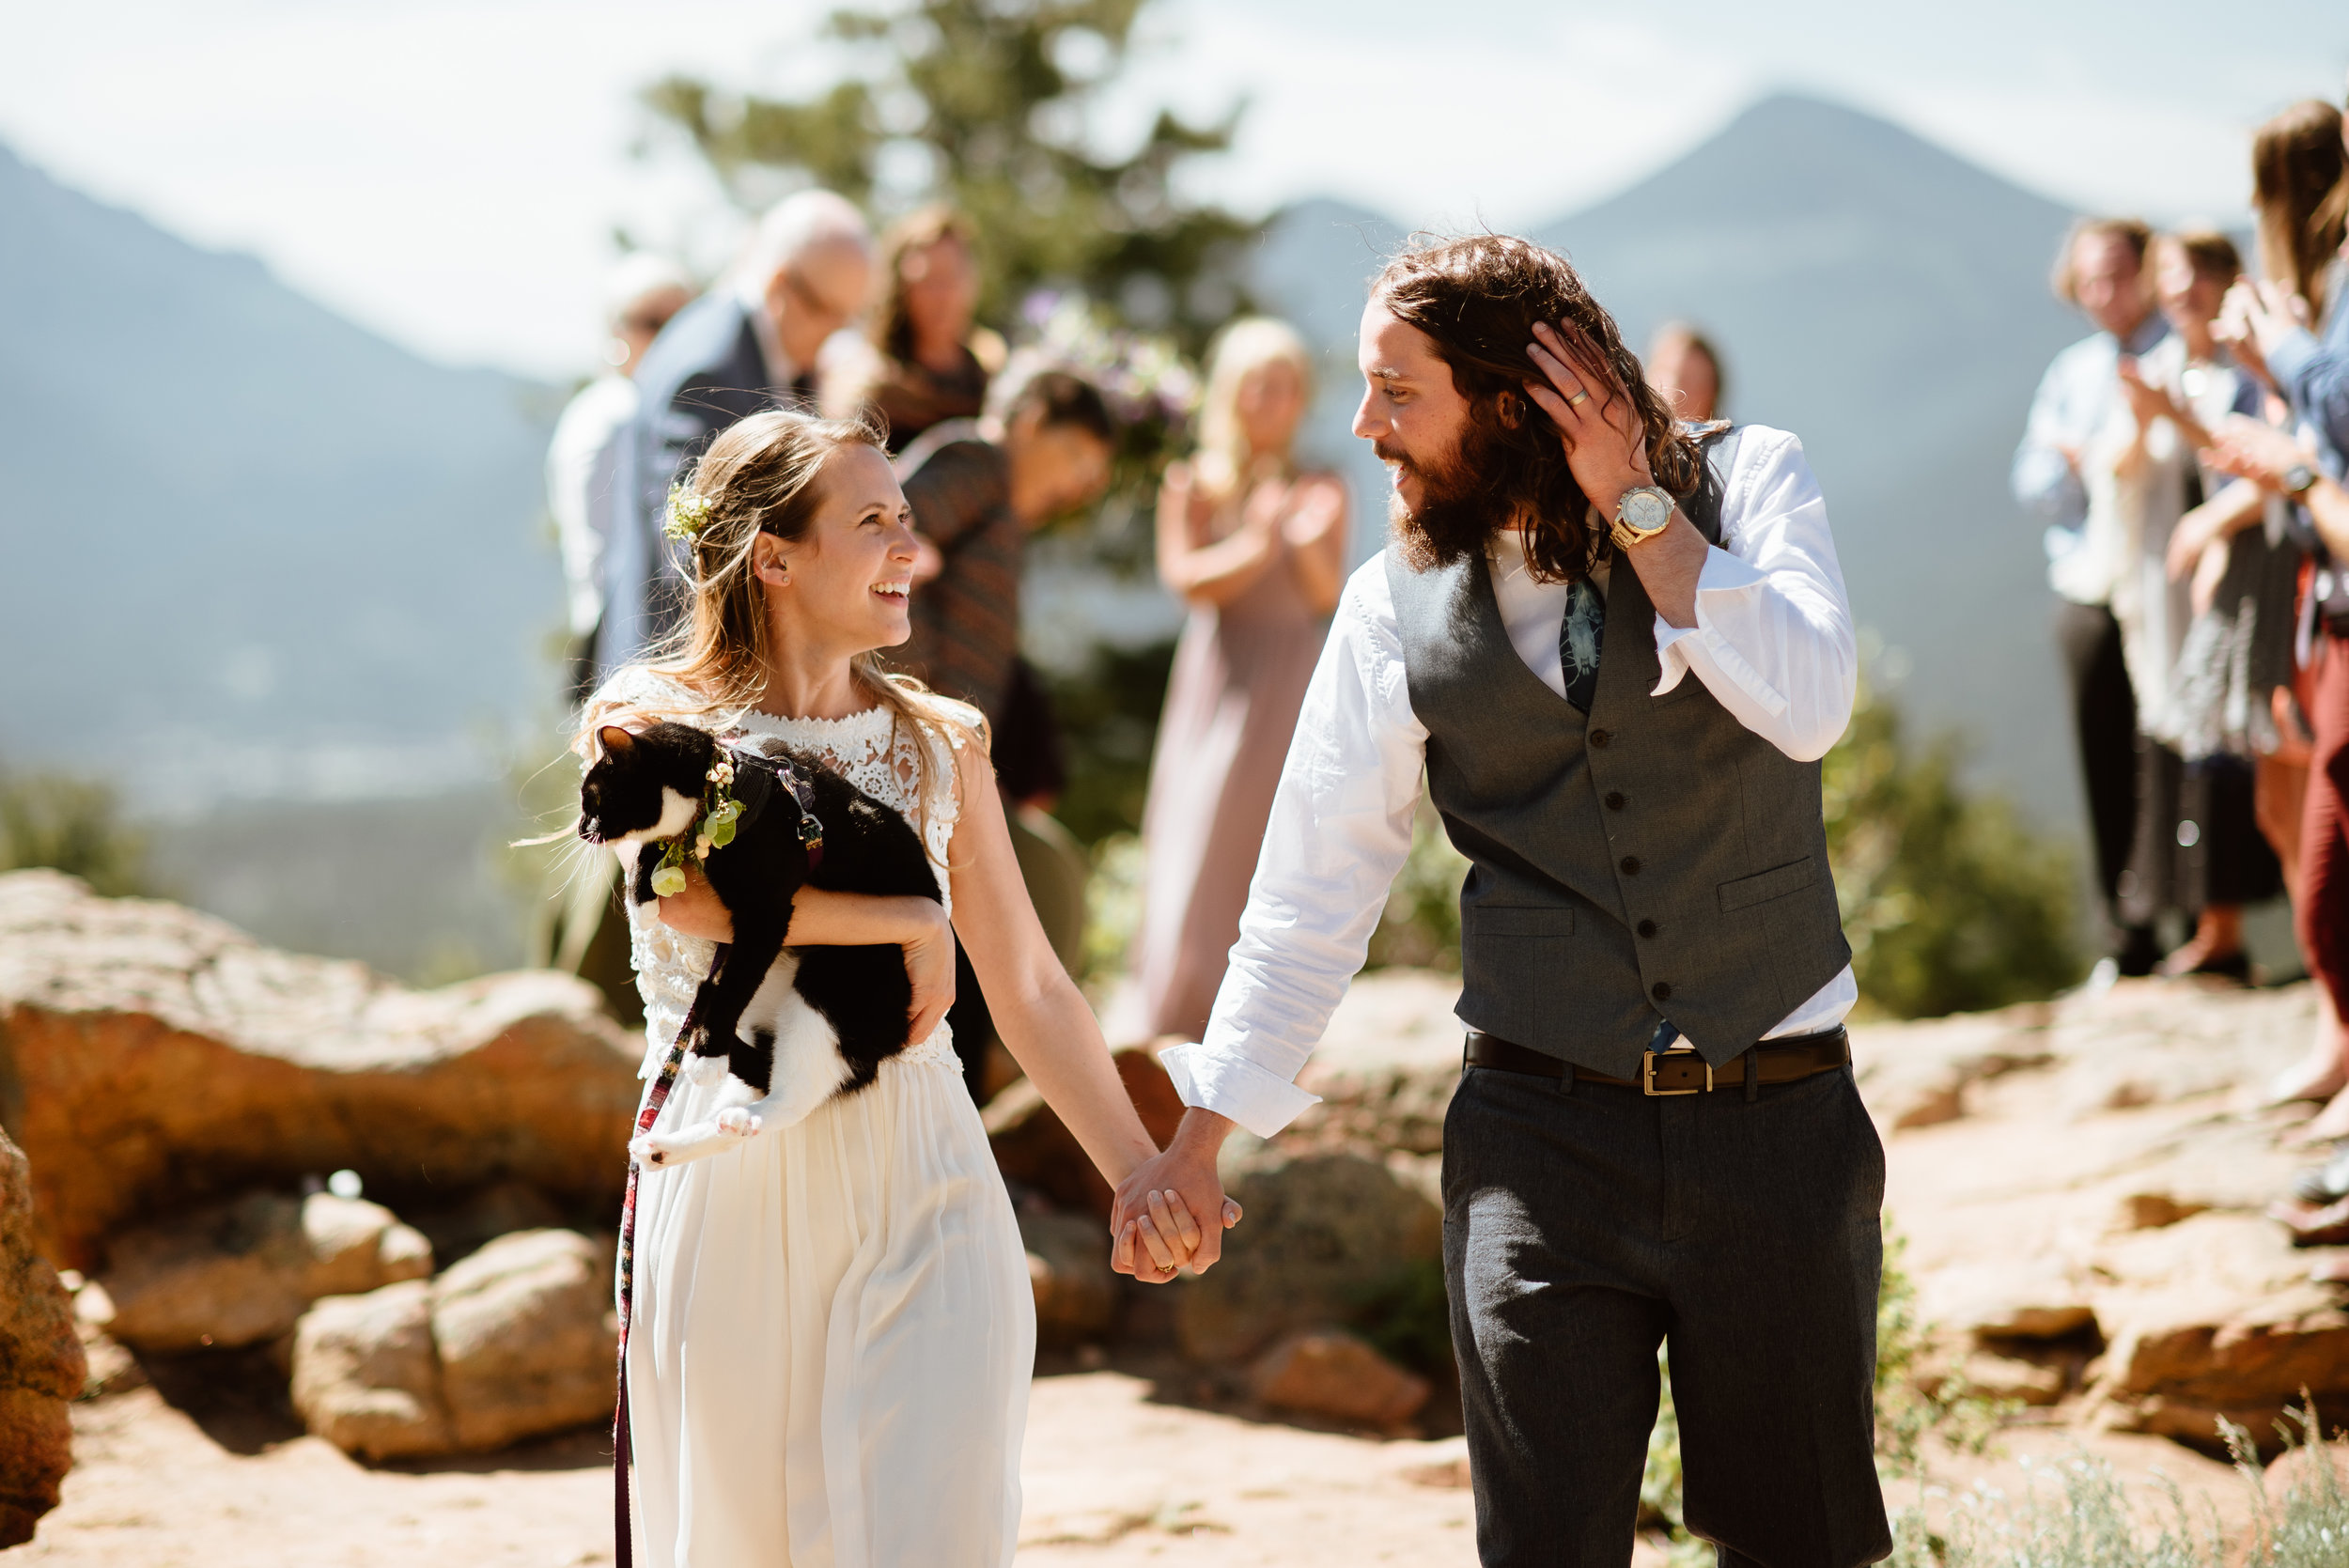 So happy for this new family! I love this mountain wedding! | Hiking elopement photos by Colorado wedding photographer, Maddie Mae.